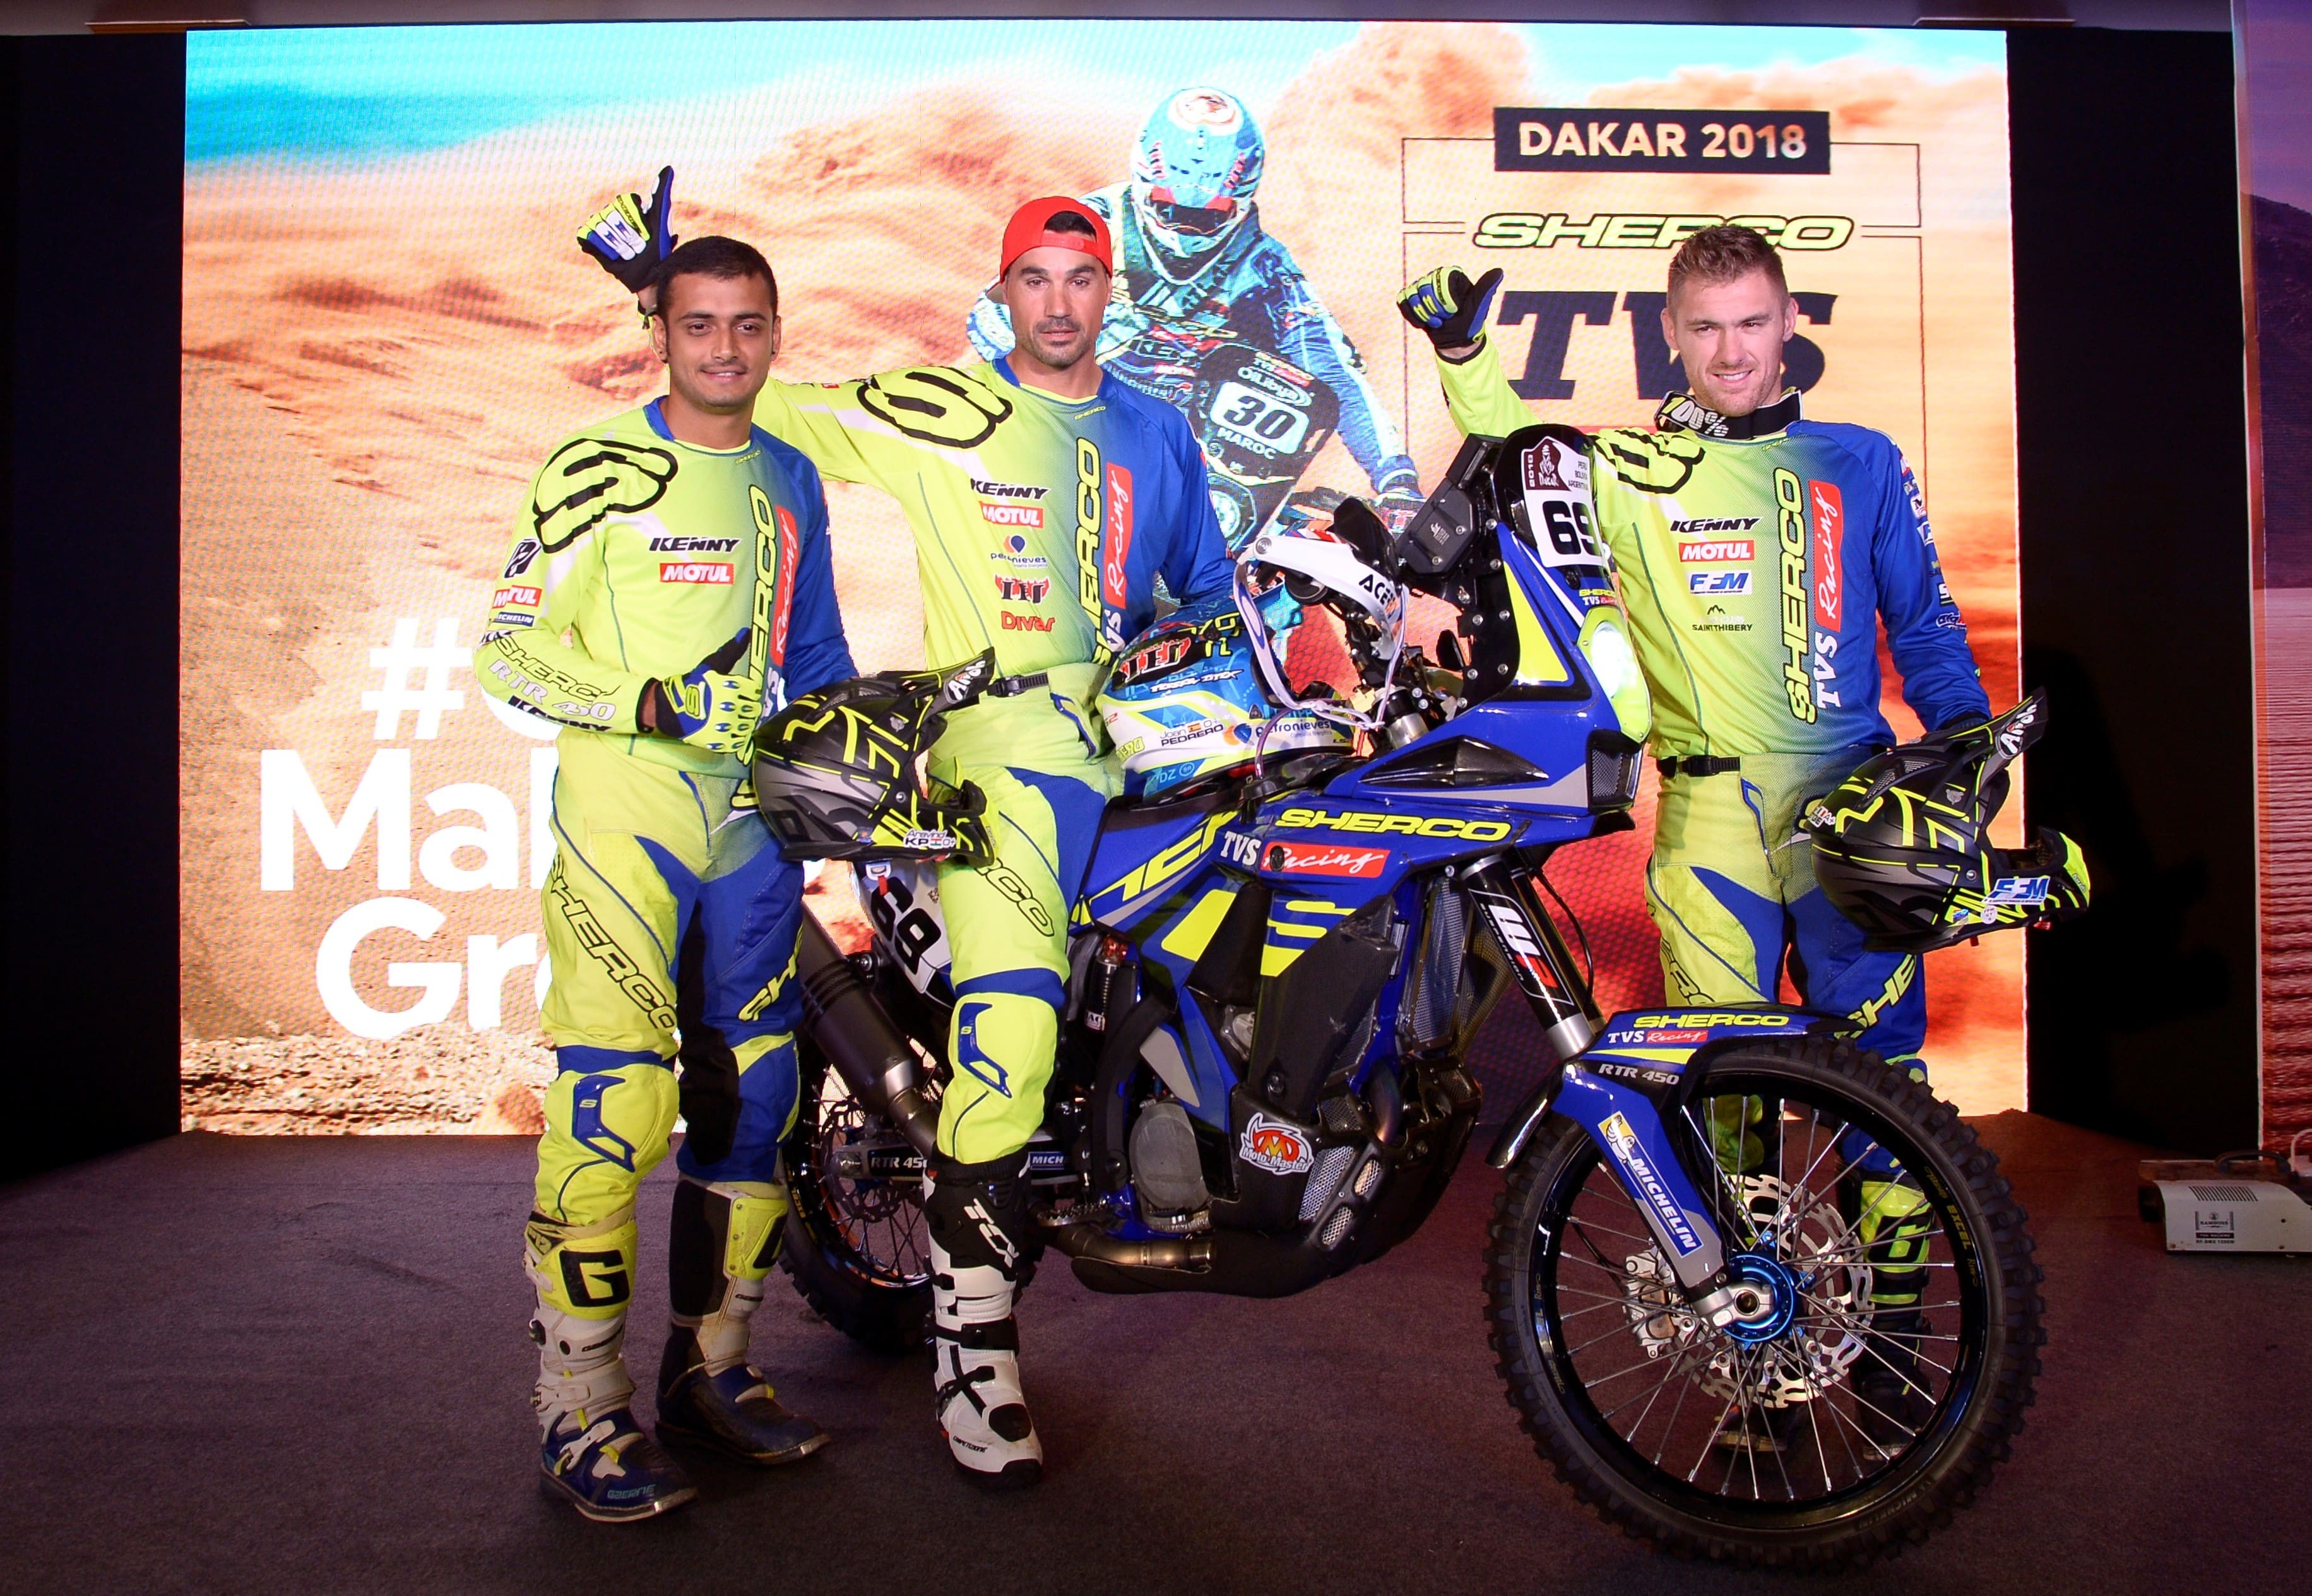 Sherco-TVS Factory Rally Team officially announce 3-rider squad for upcoming Dakar 2018